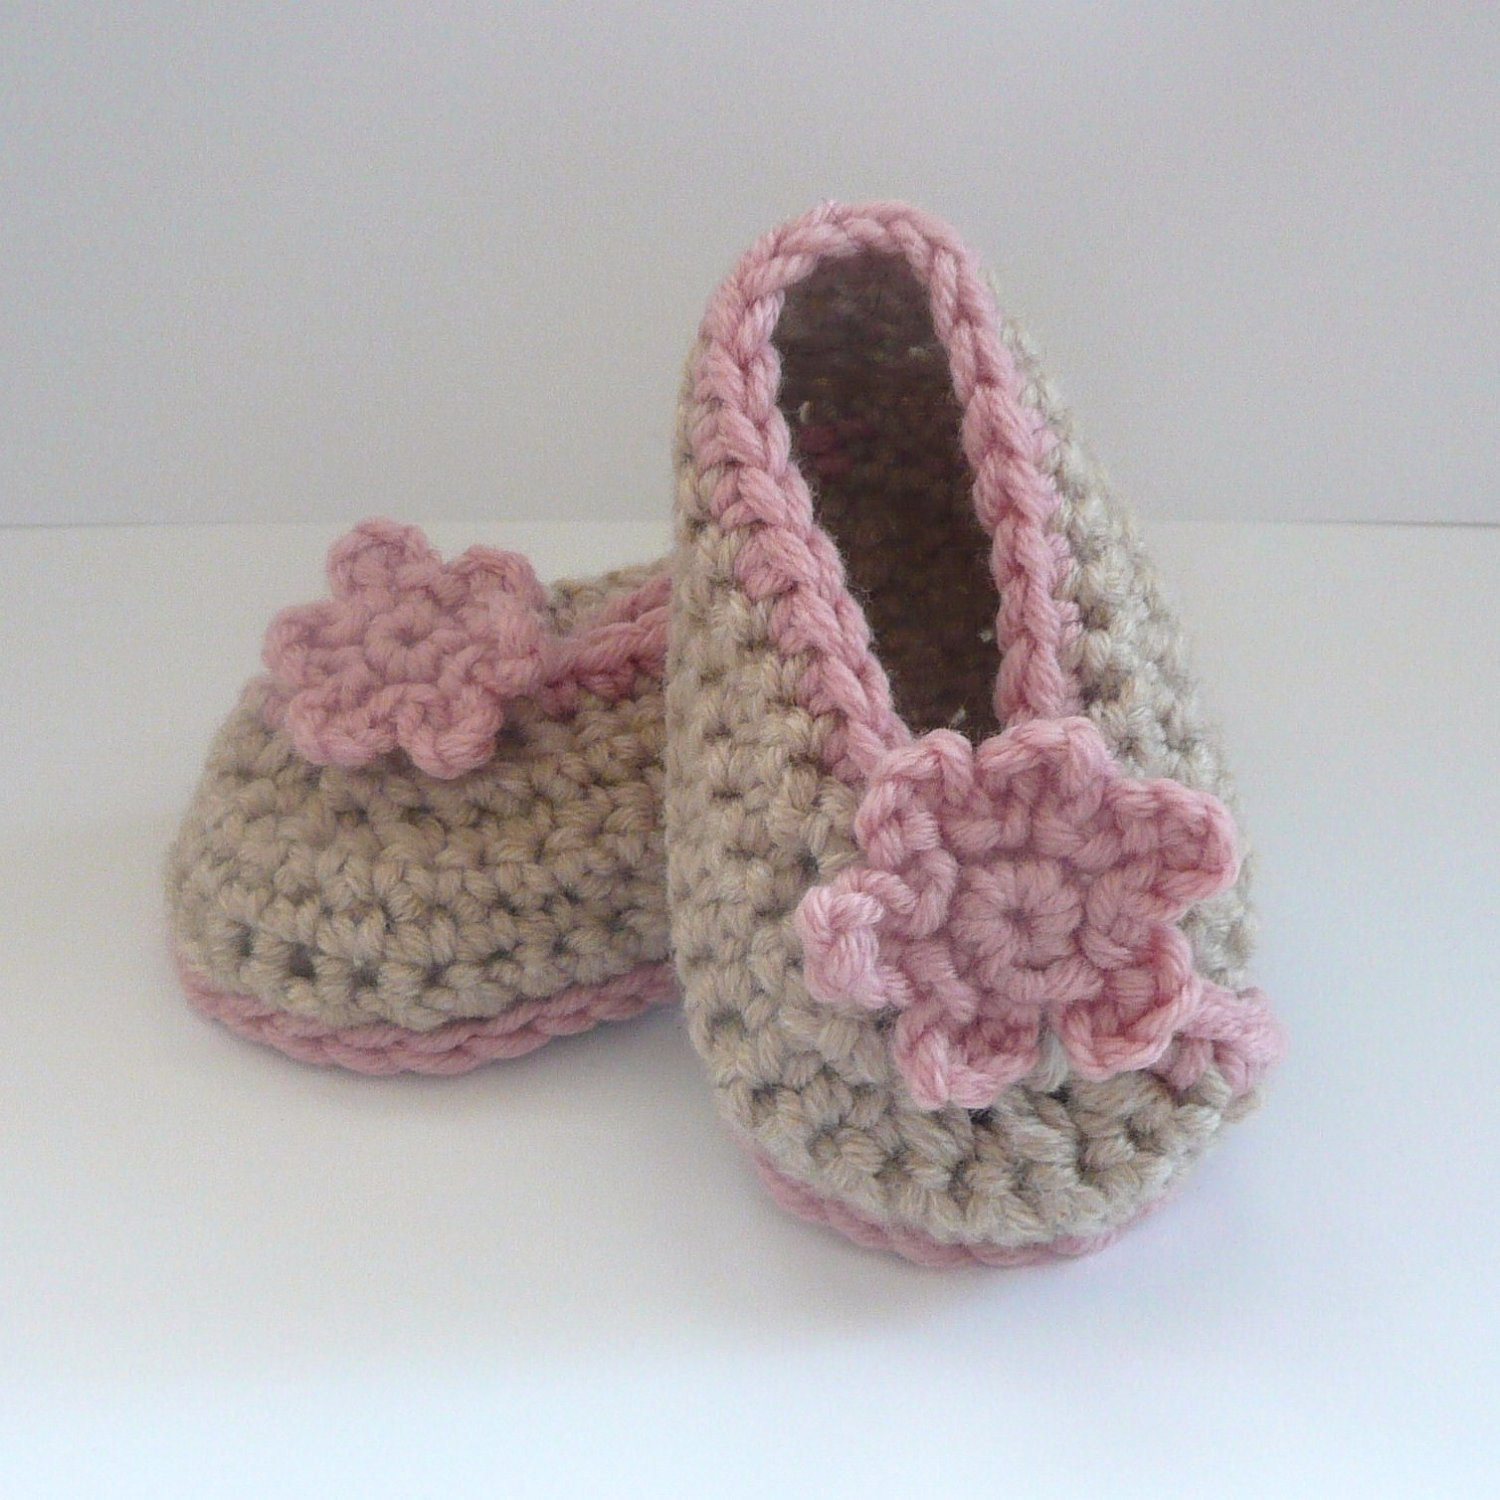 Inspirational Crochet Pattern Baby Booties Crossover Baby Shoes Instant Crochet Baby socks Of Beautiful Crochet Baby Booties Patterns for Sweet Little Feet Crochet Baby socks